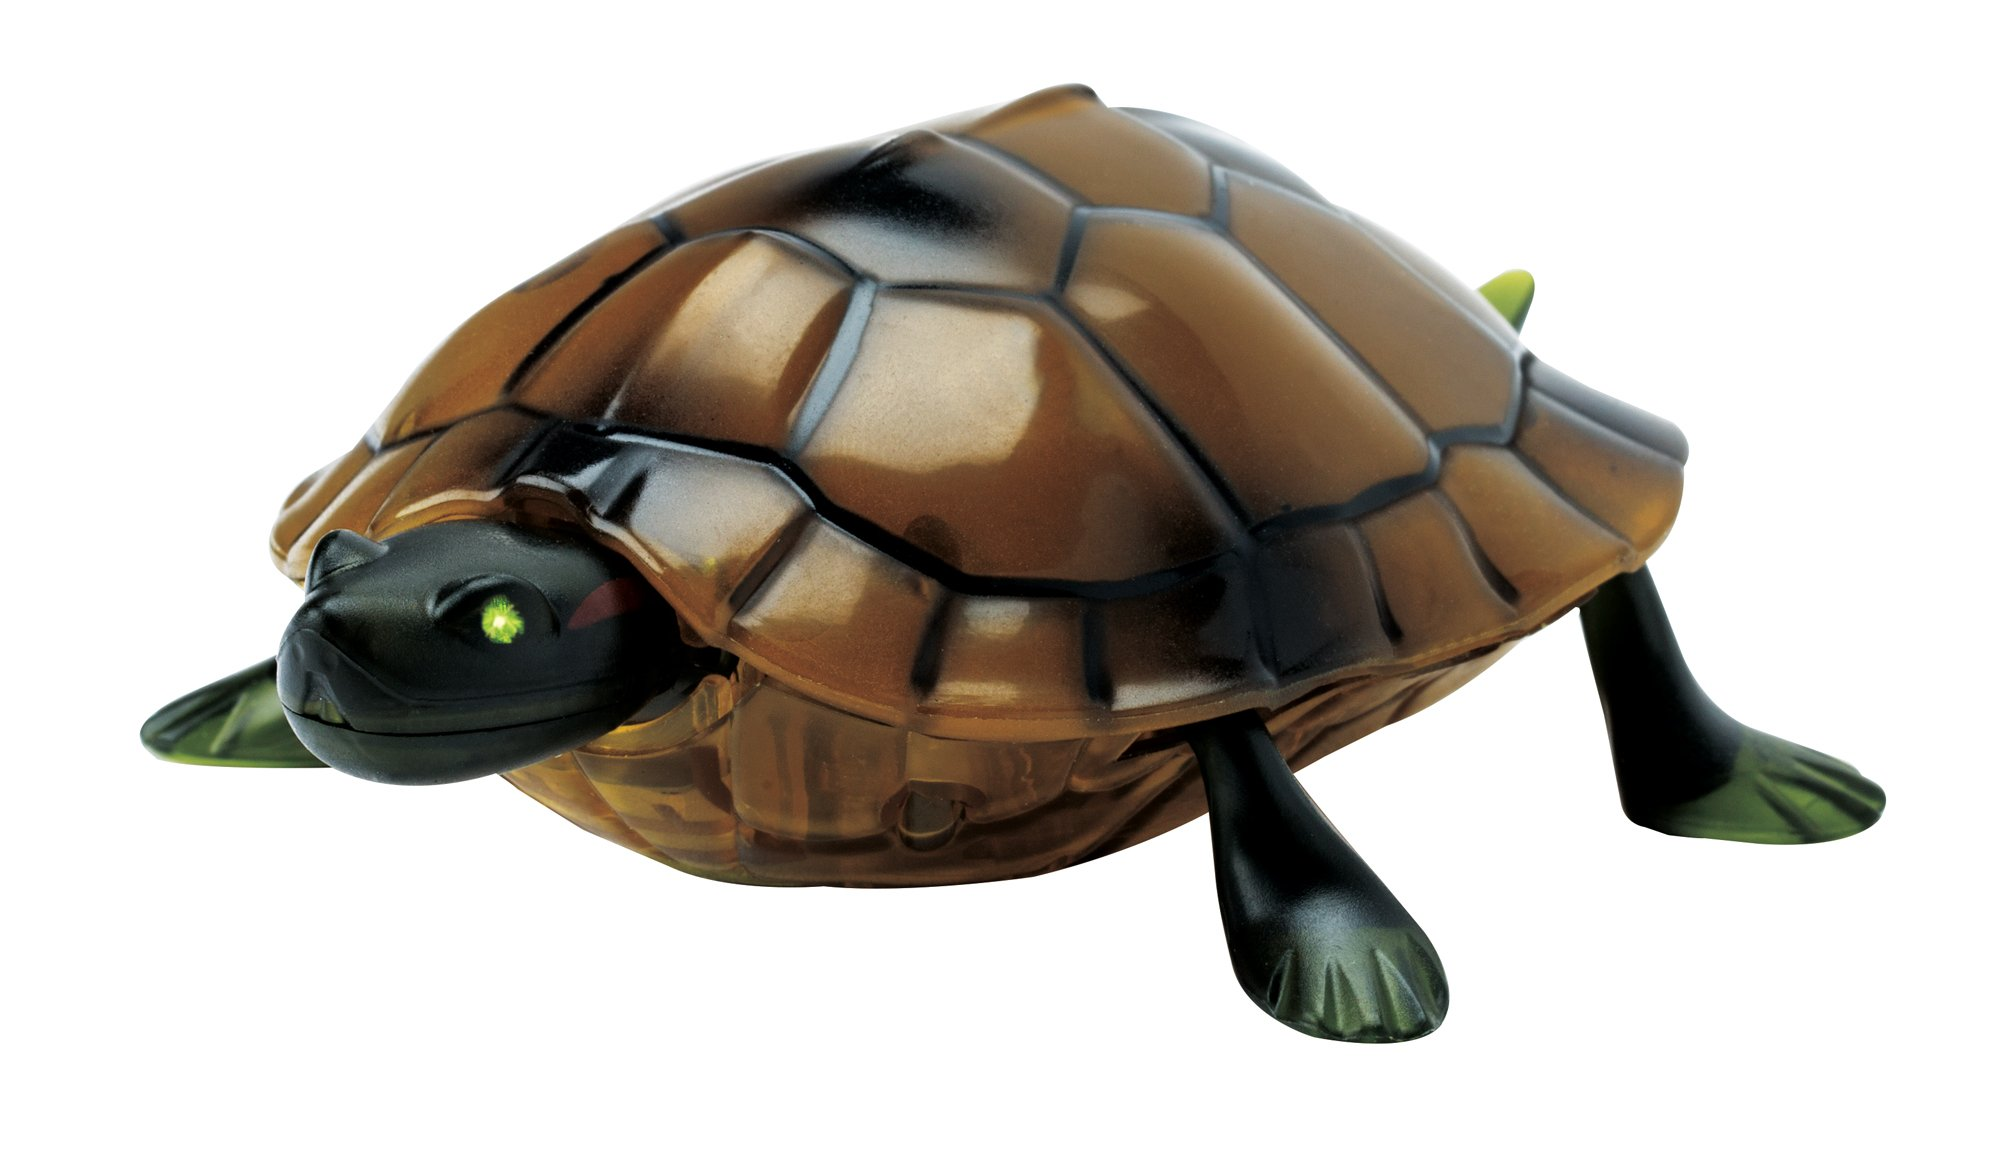 The Paragon Remote Control Turtle - RC Animal Toy, Turtle Toy for Kids and Adults by The Paragon (Image #9)